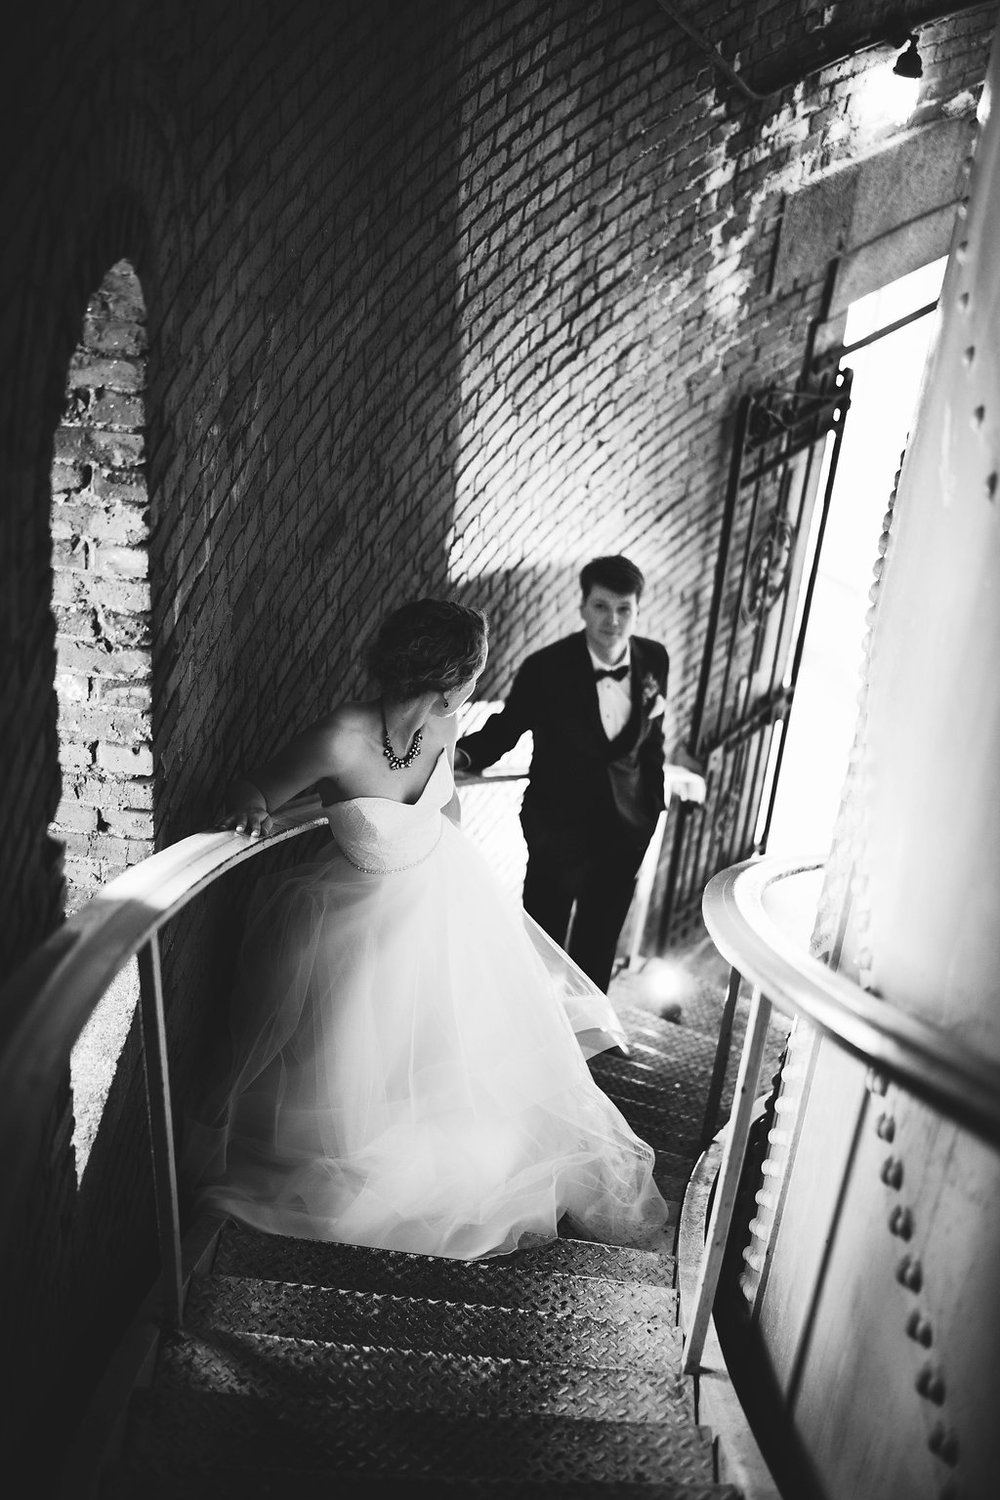 Nissa+Jesse_Wedding_Seattle_SoleRepairShop_6252015_144.jpg